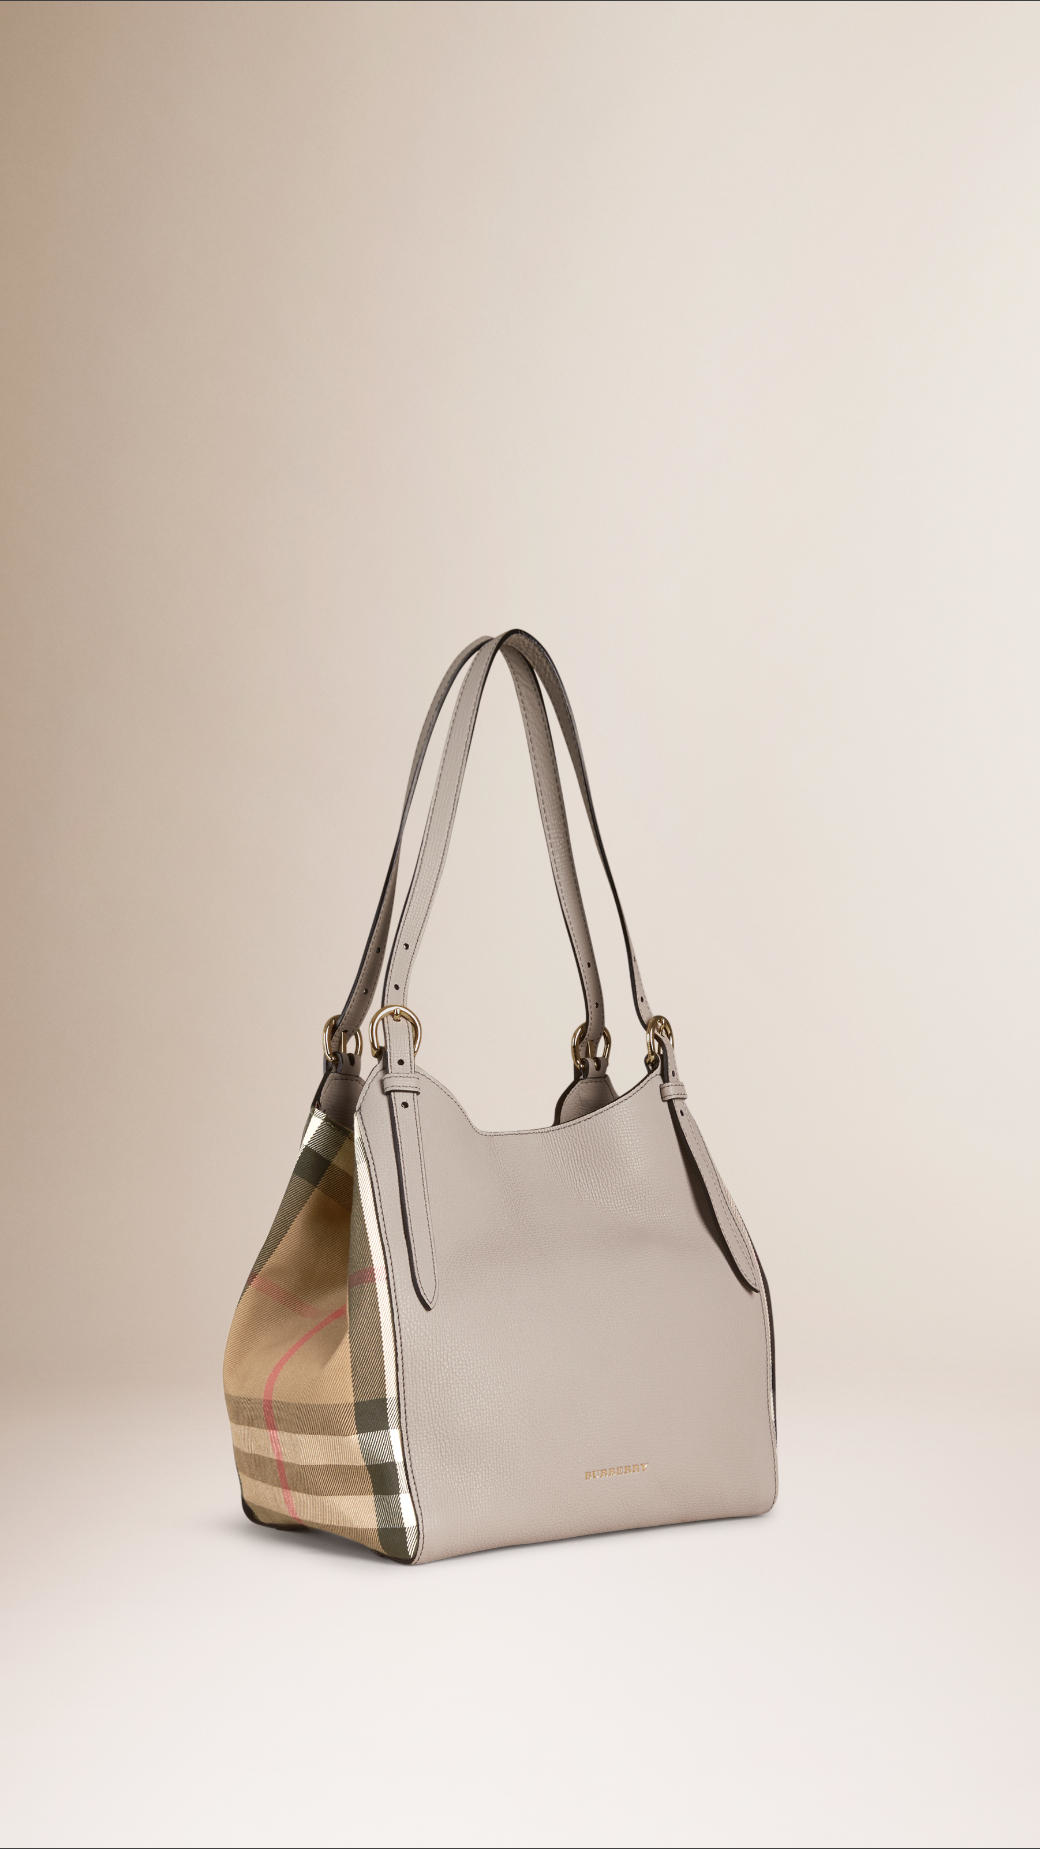 989f891dddb1 Burberry The Small Canter In Leather And House Check in Gray - Lyst